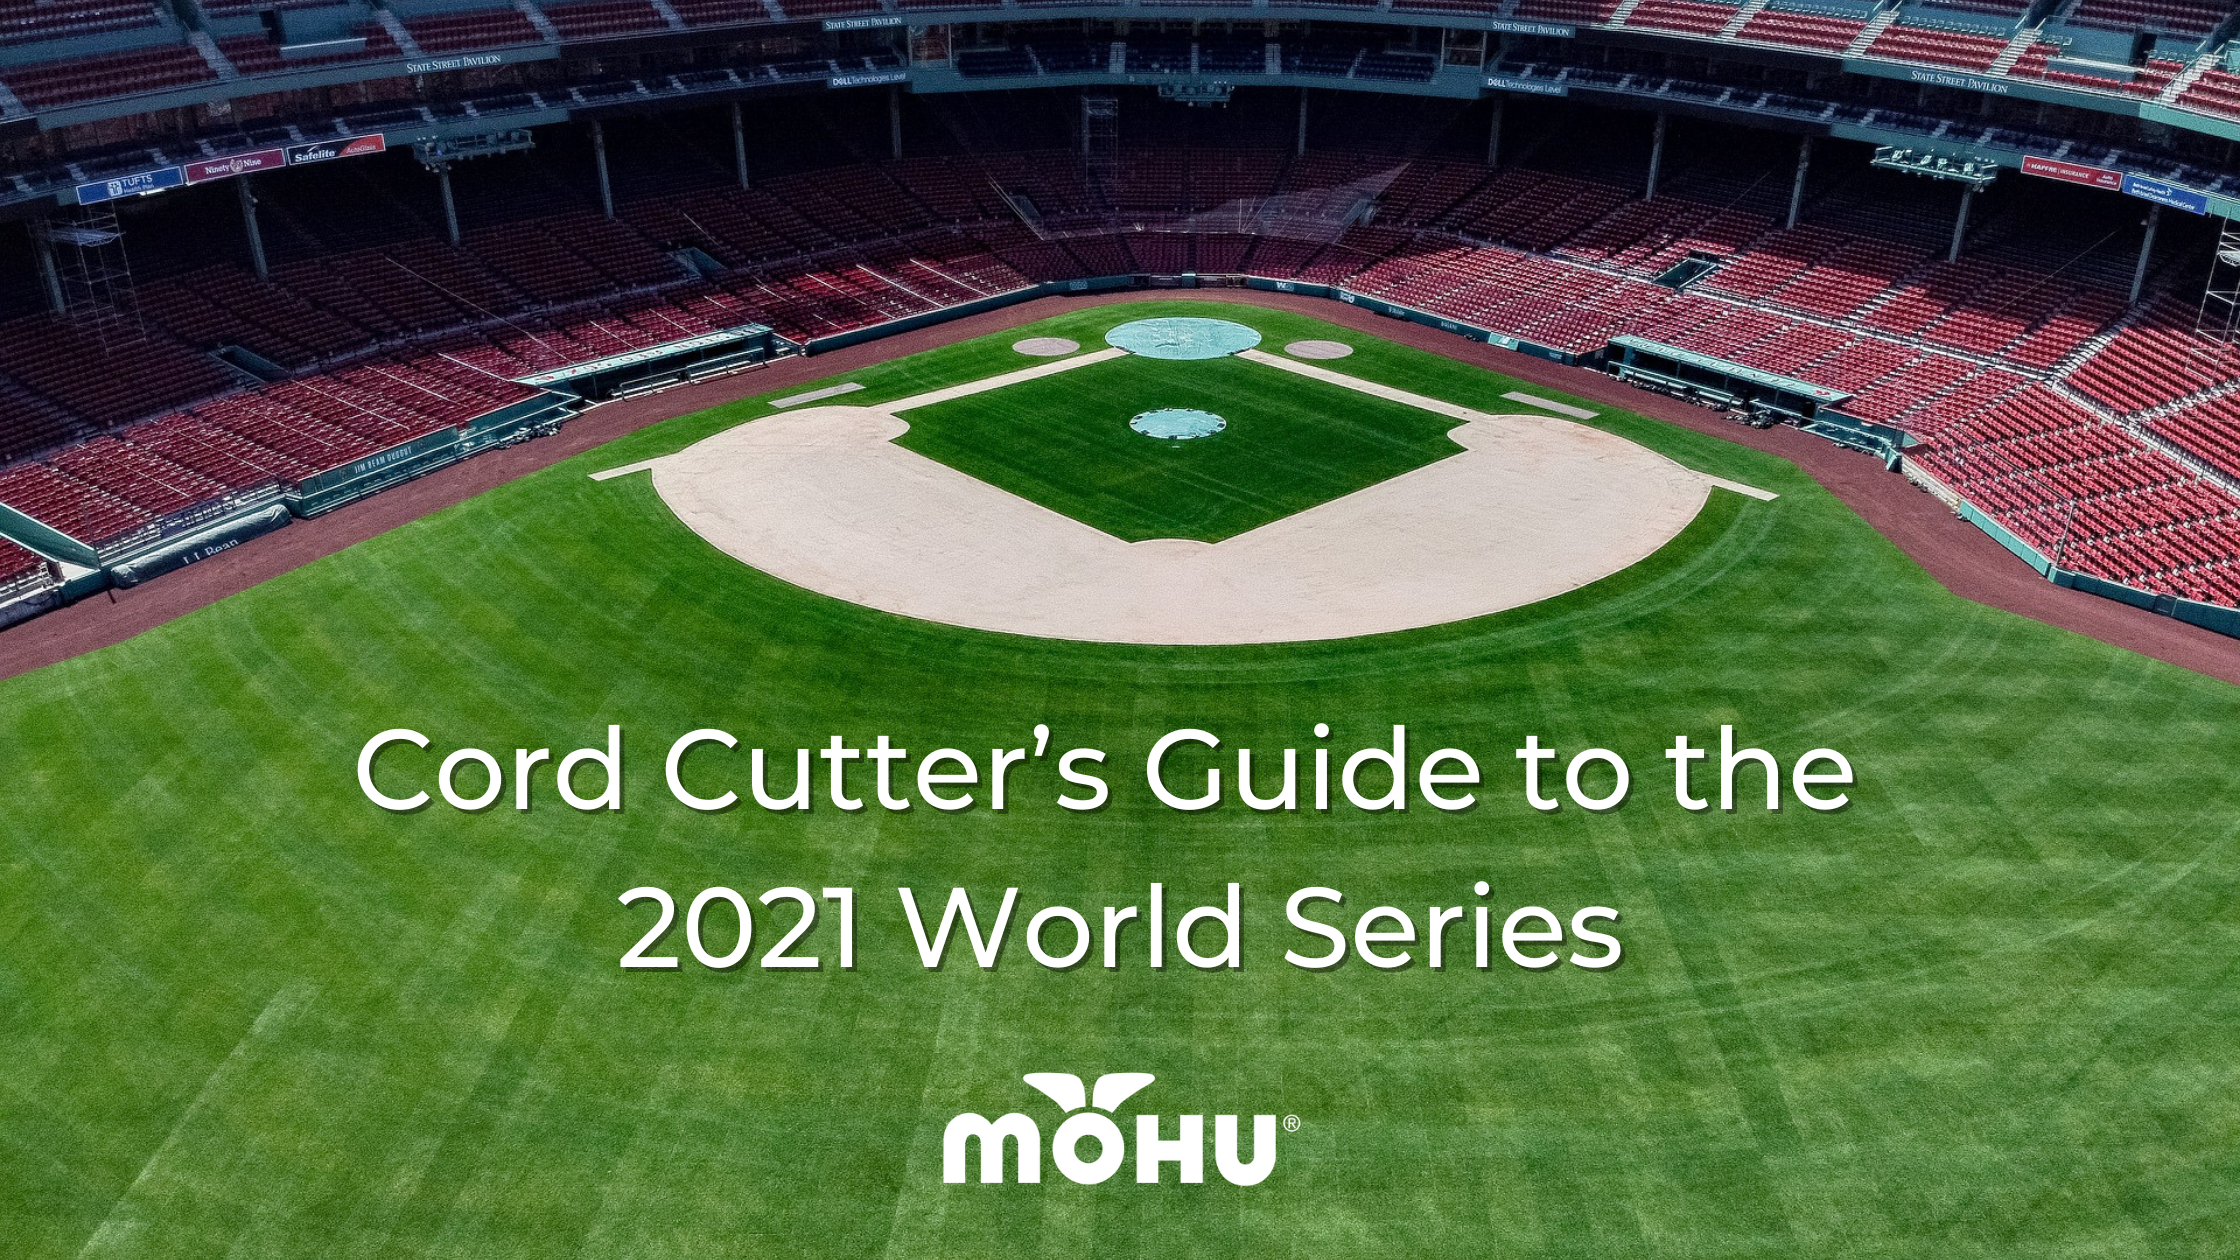 Empty baseball field, Mohu logo, Cord Cutter's Guide to the 2021 World Series